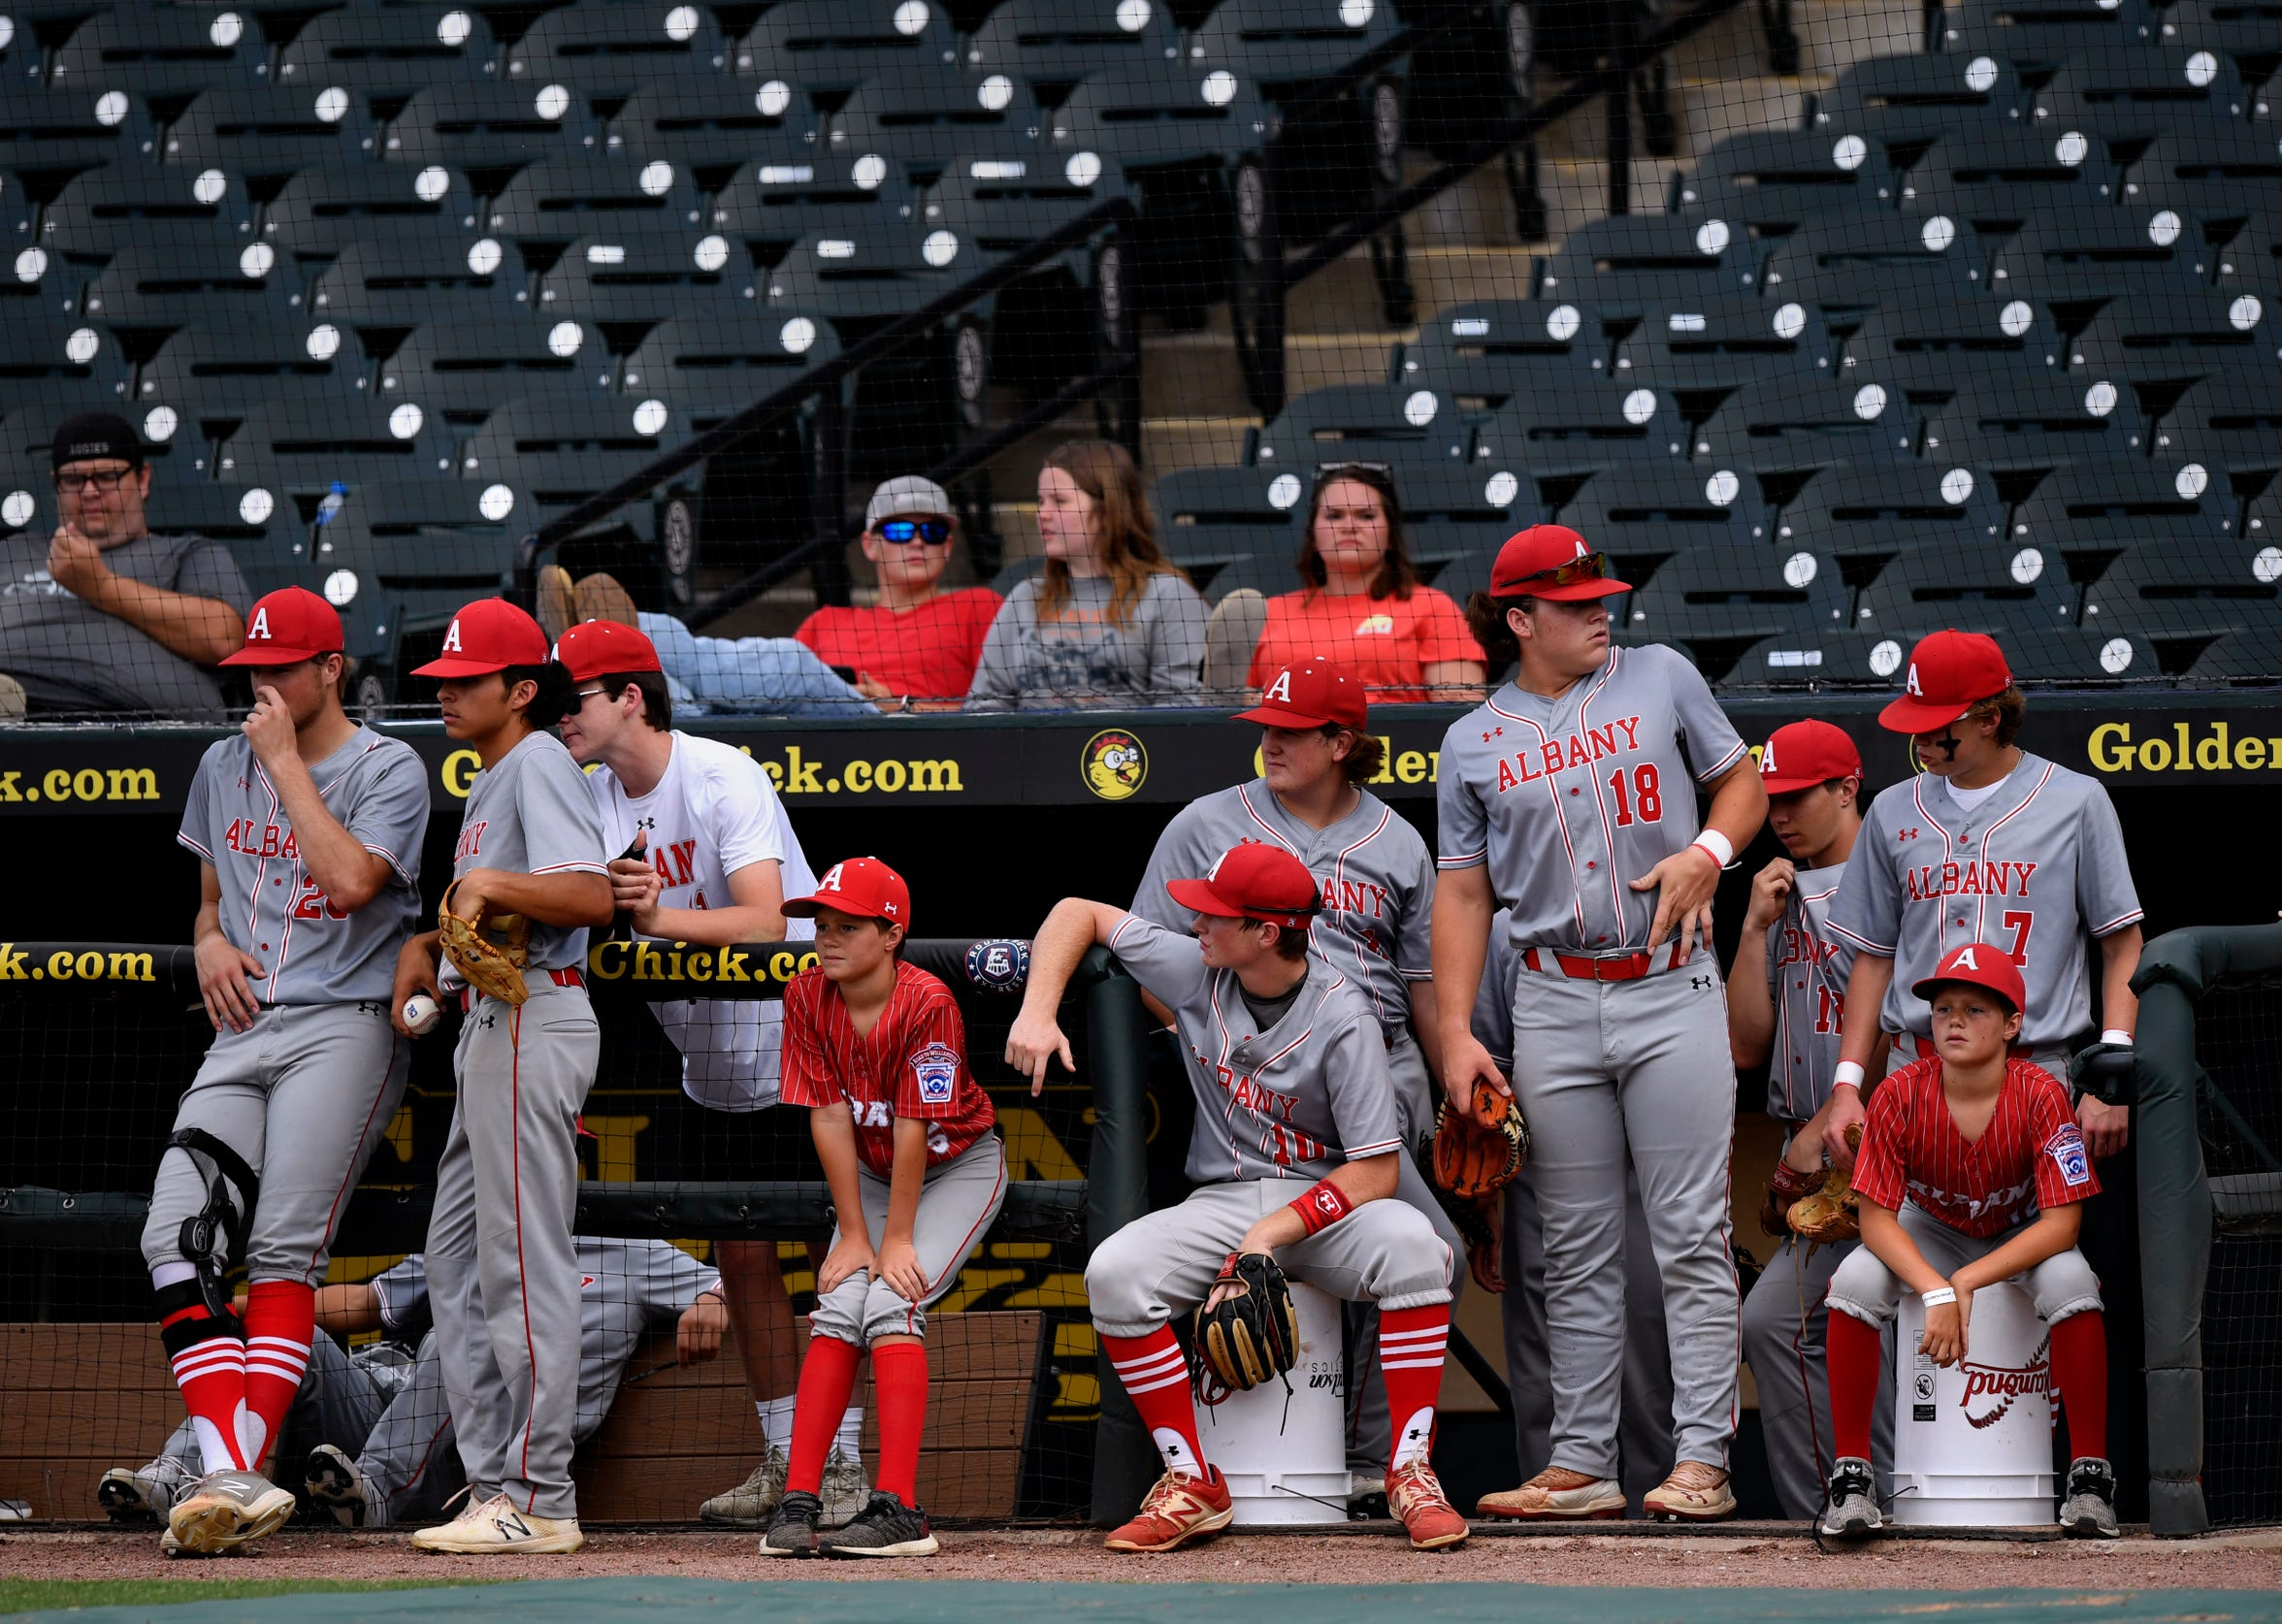 Members of the Albany baseball team wait in the dugout for the start of their Class 2A semifinal game against Big Sandy. The Lions made it to state for the second time in three years.